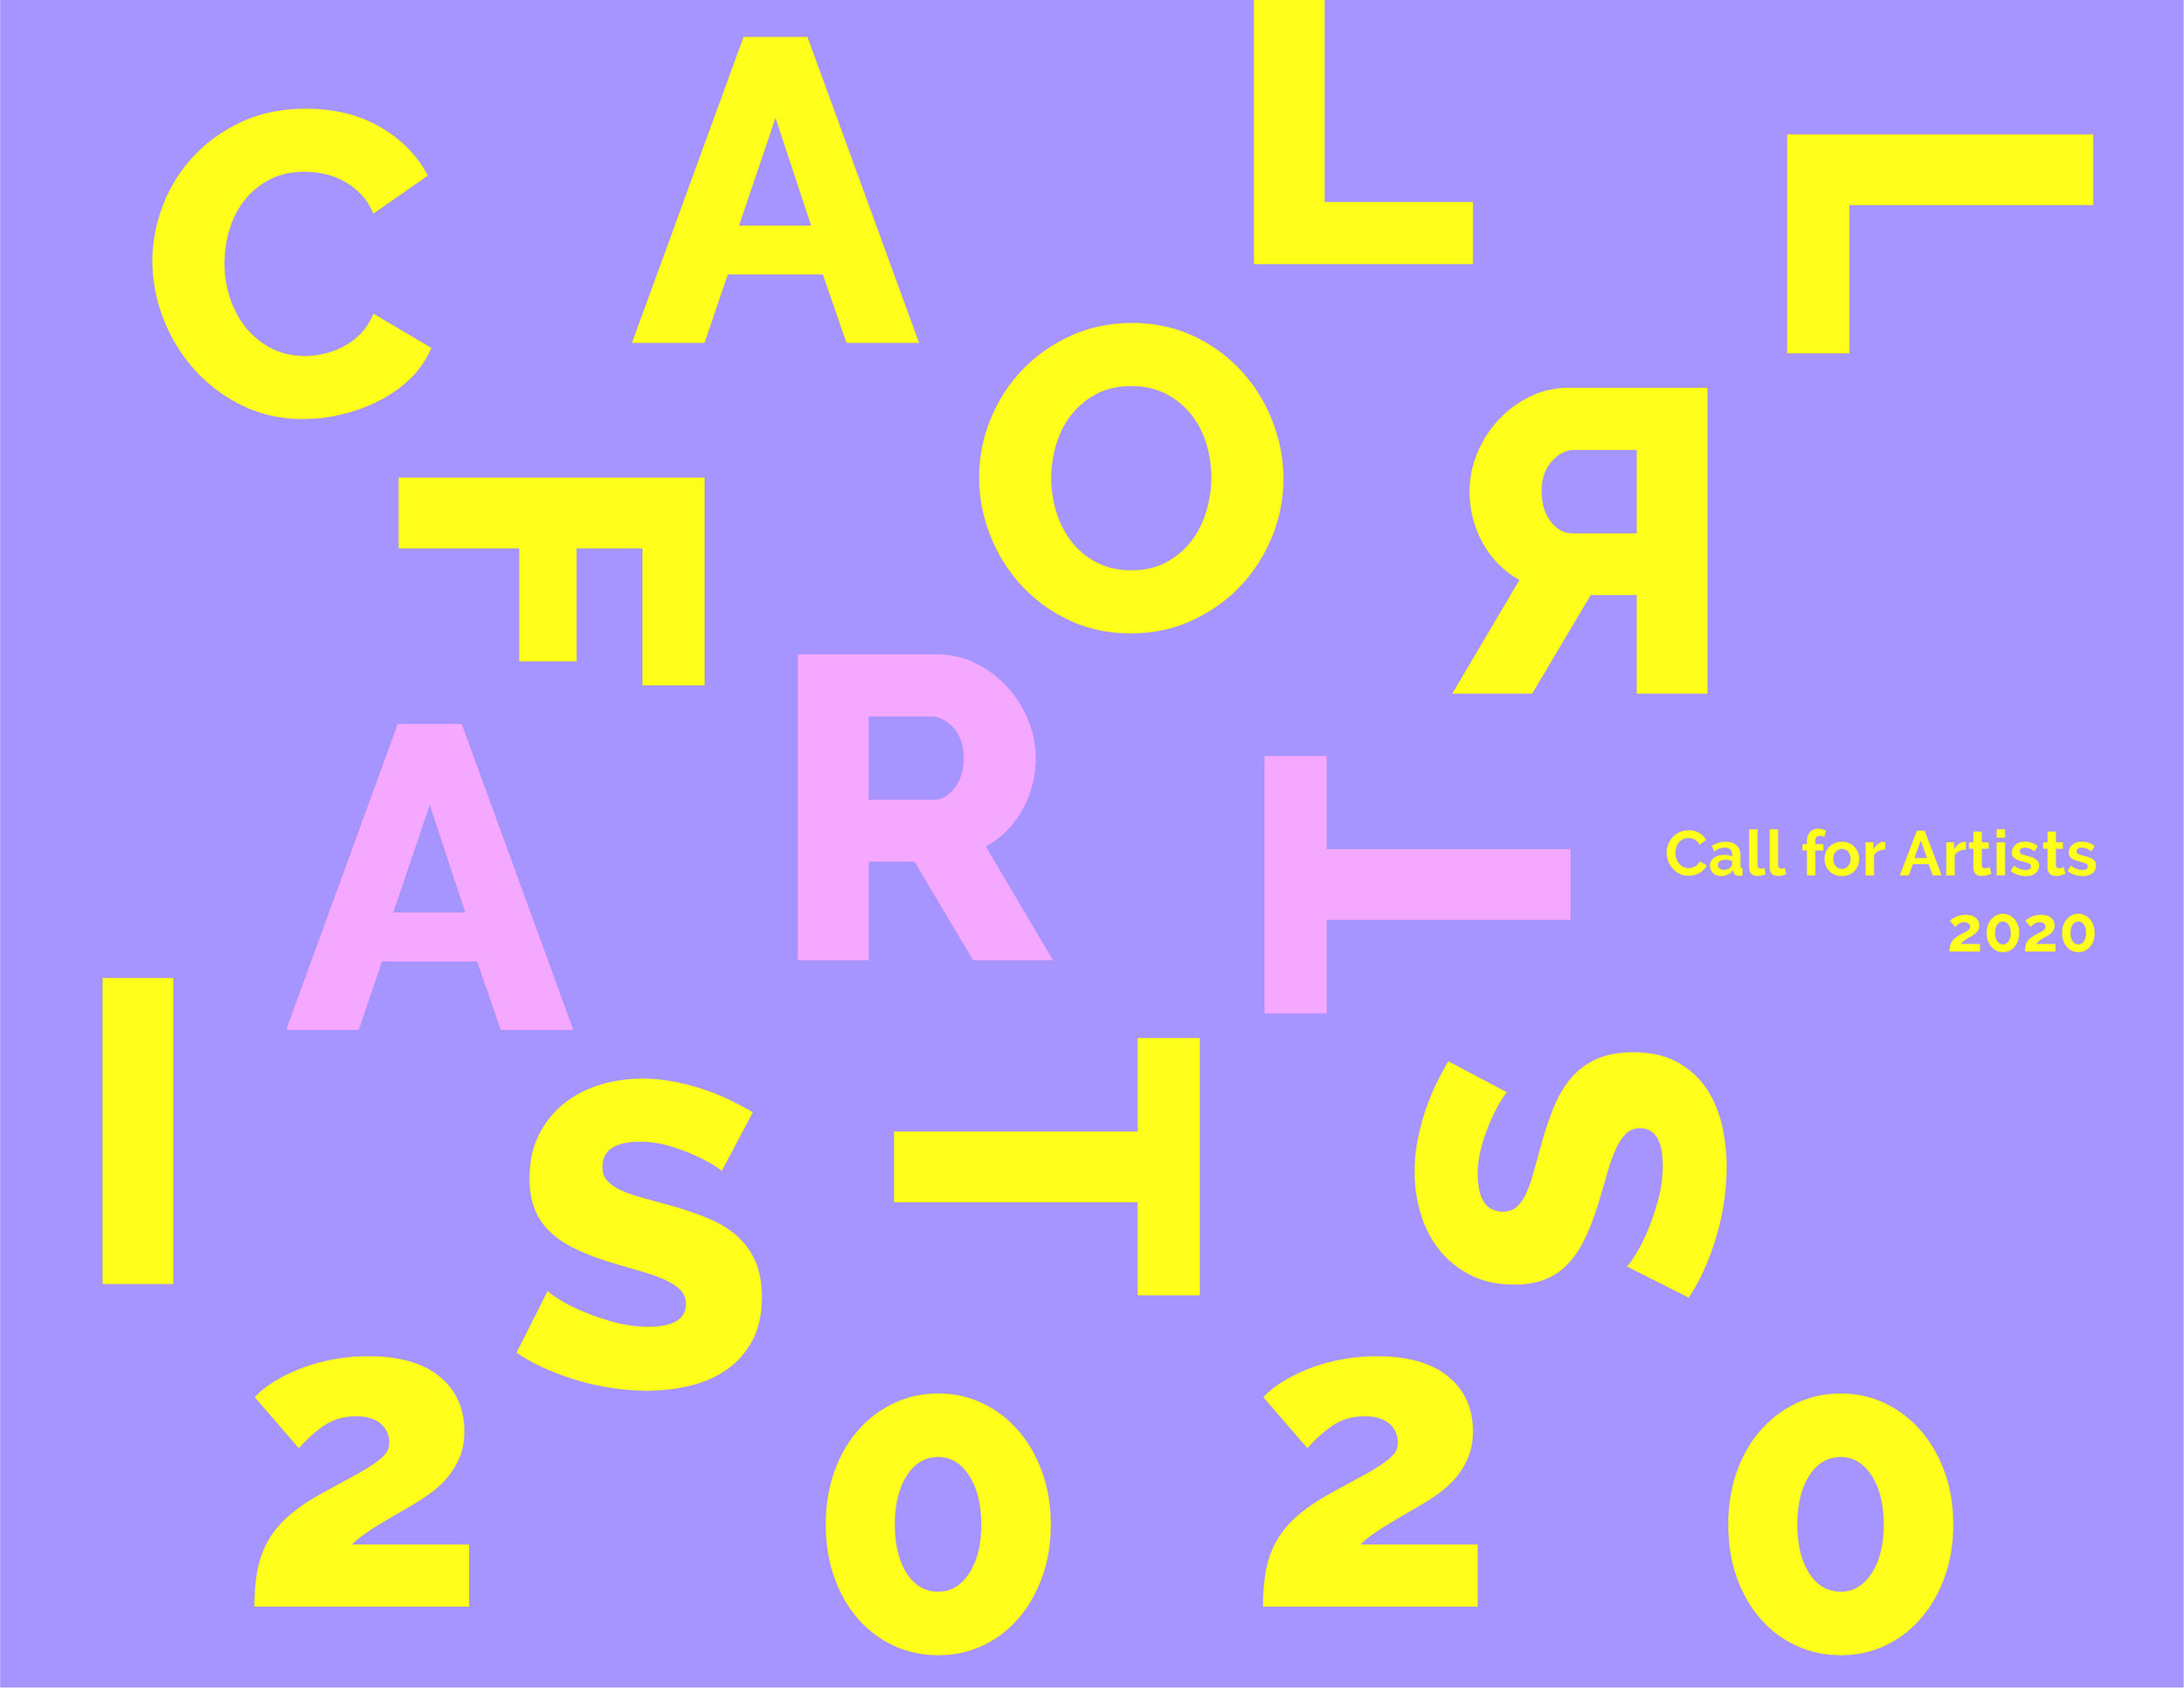 Call for Artists 2020 (1).jpg